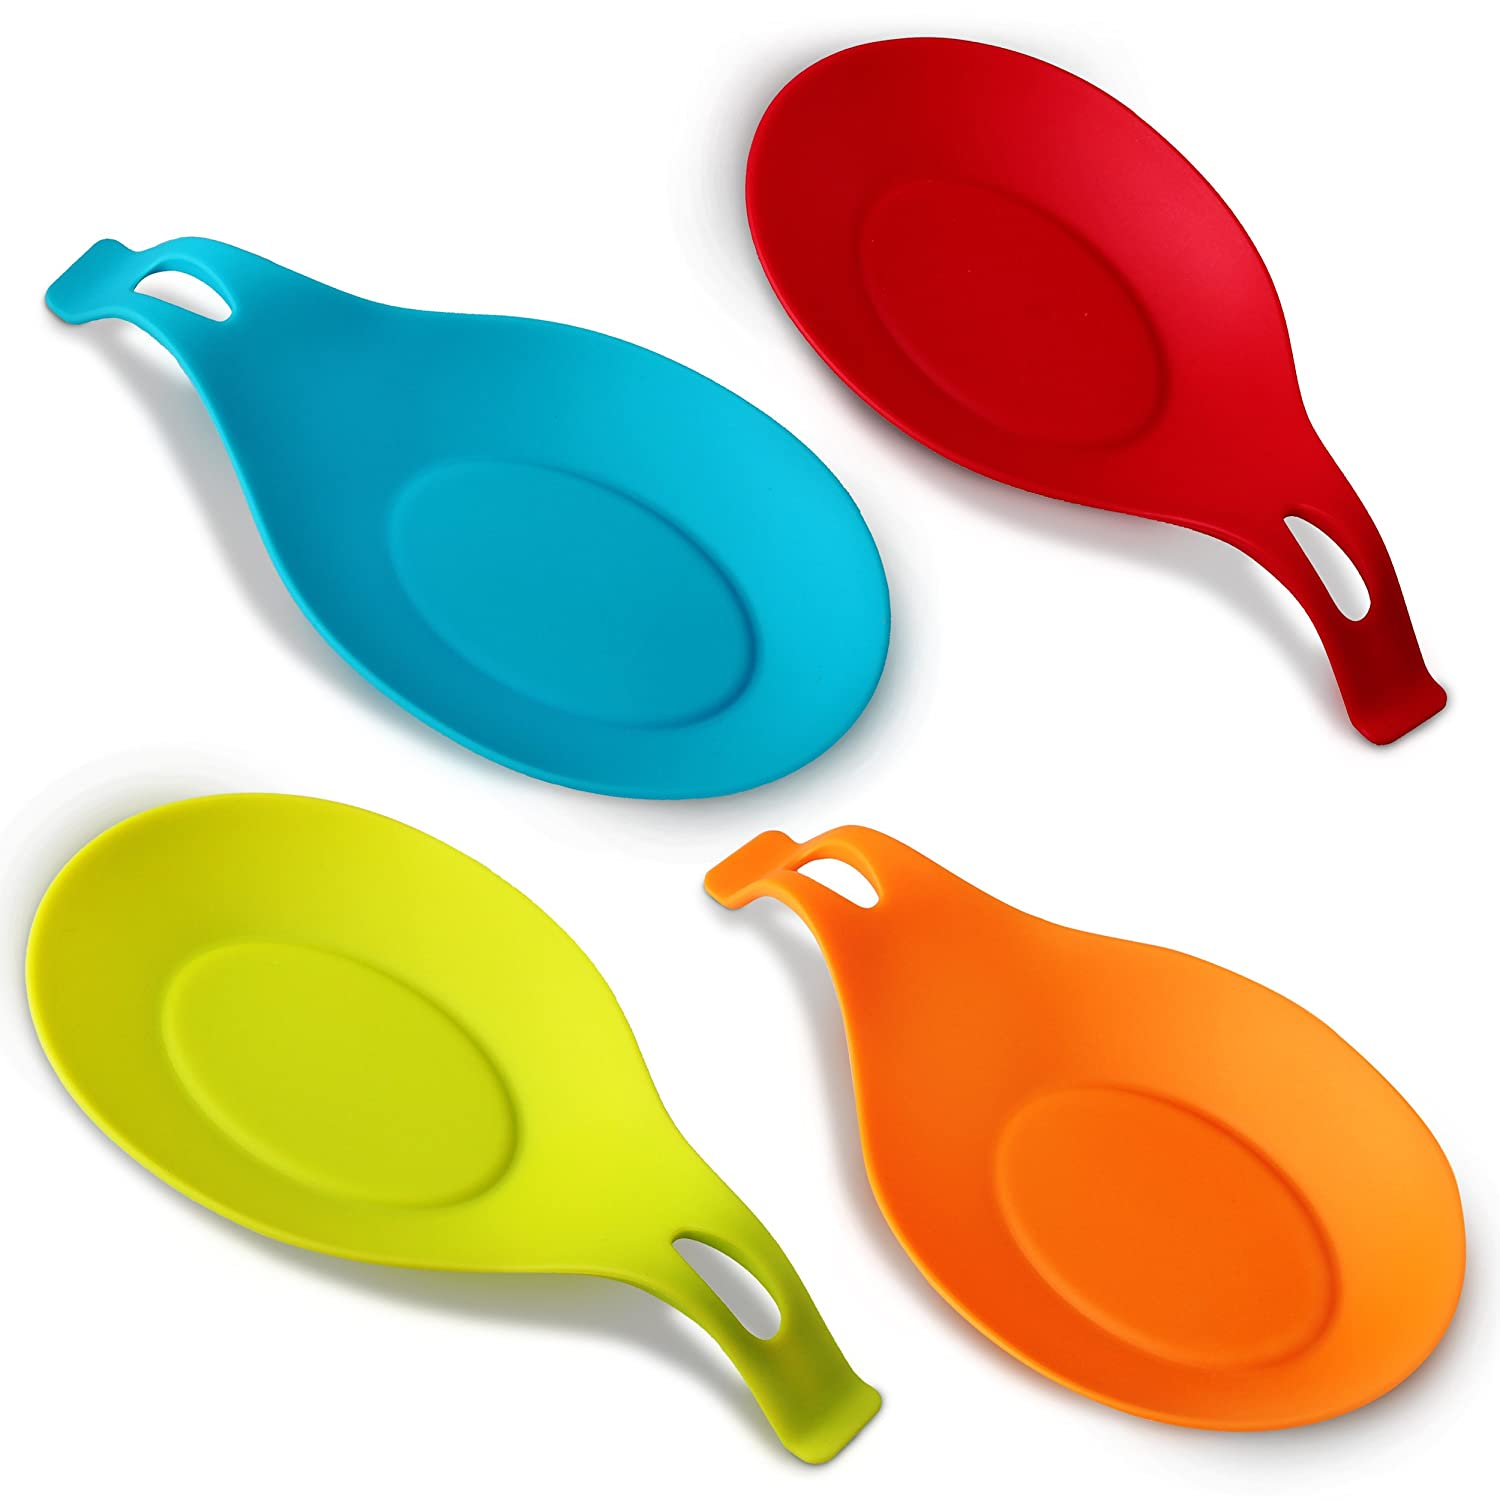 Amazon.com: ORBLUE Flexible Almond-Shaped Silicone Spoon Rest - 4 ...